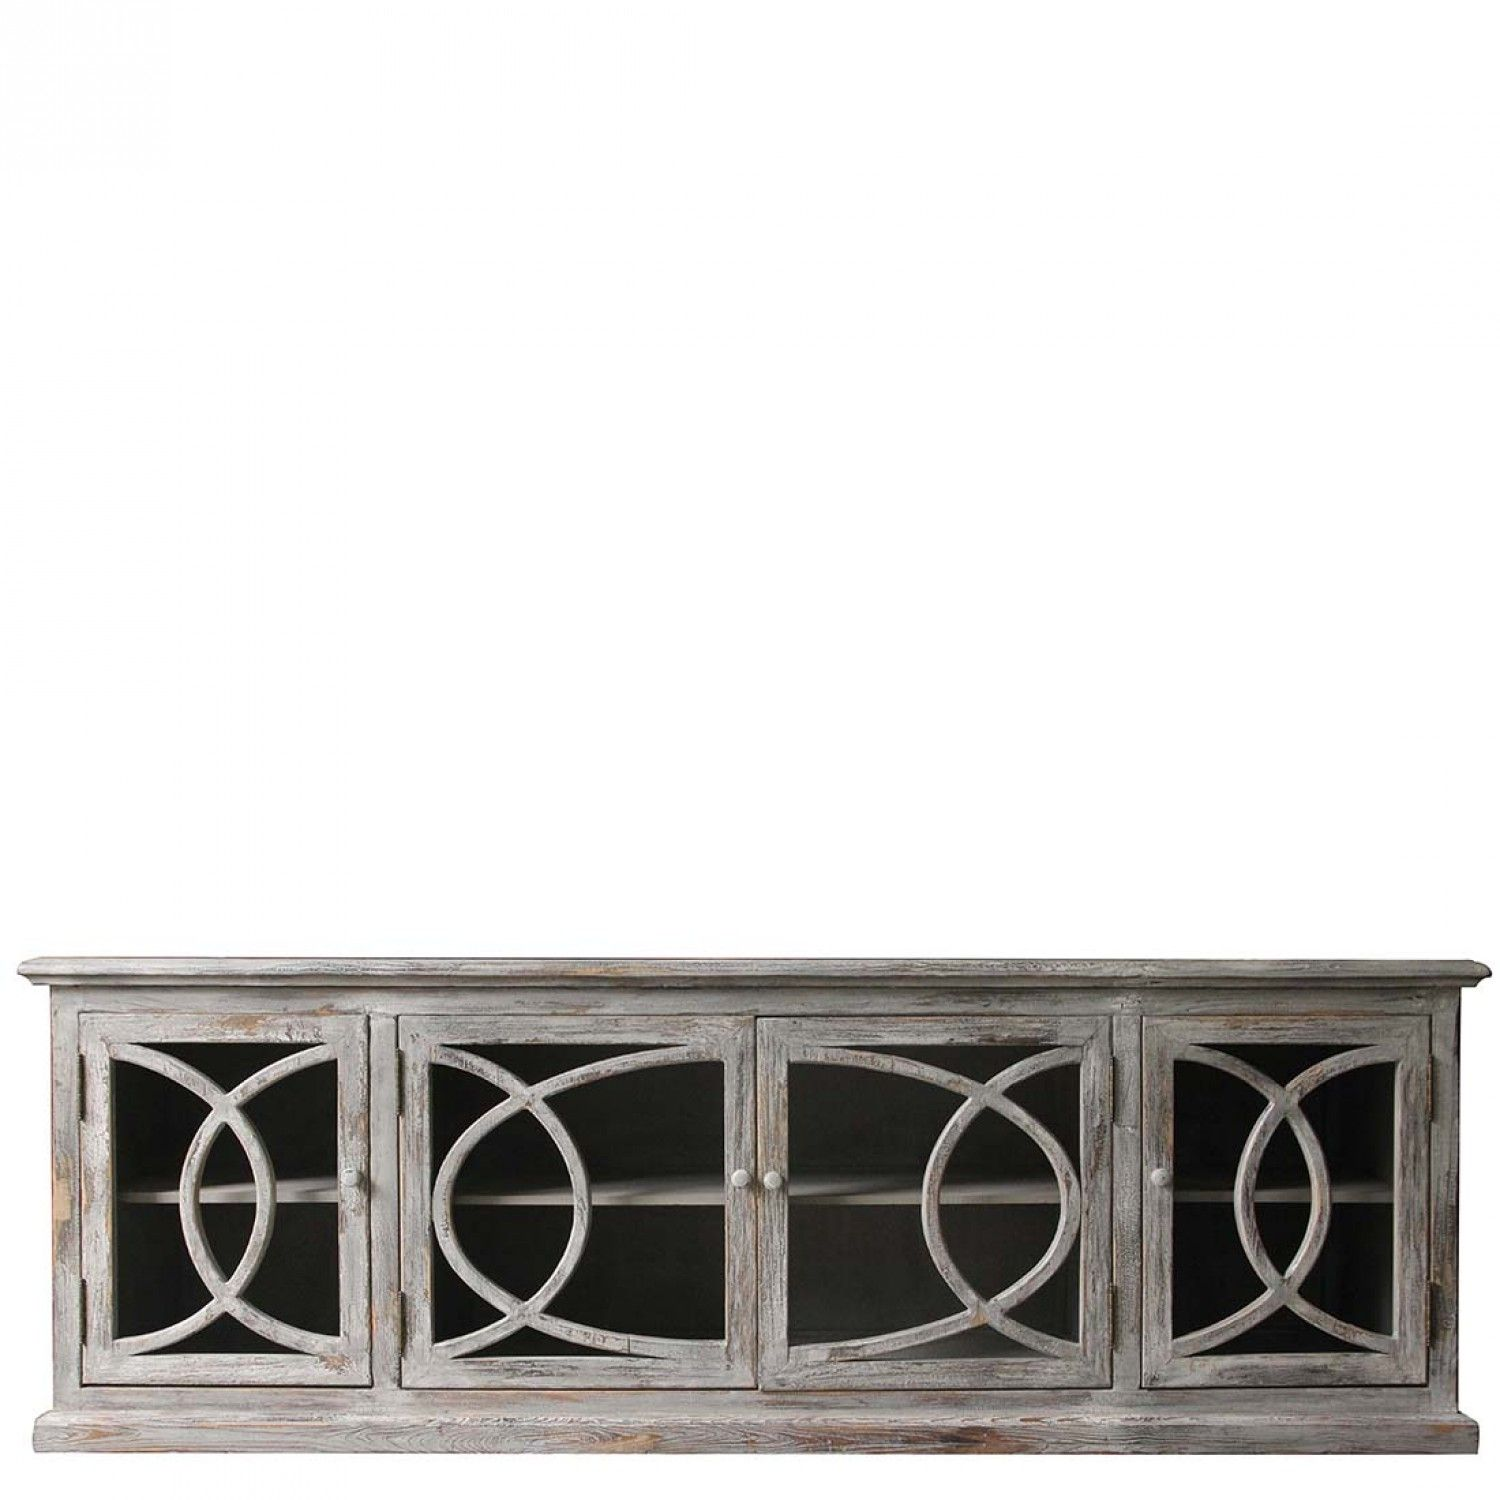 Beau Long Low Cabinet | Sideboard With Glass Doors | Orchid